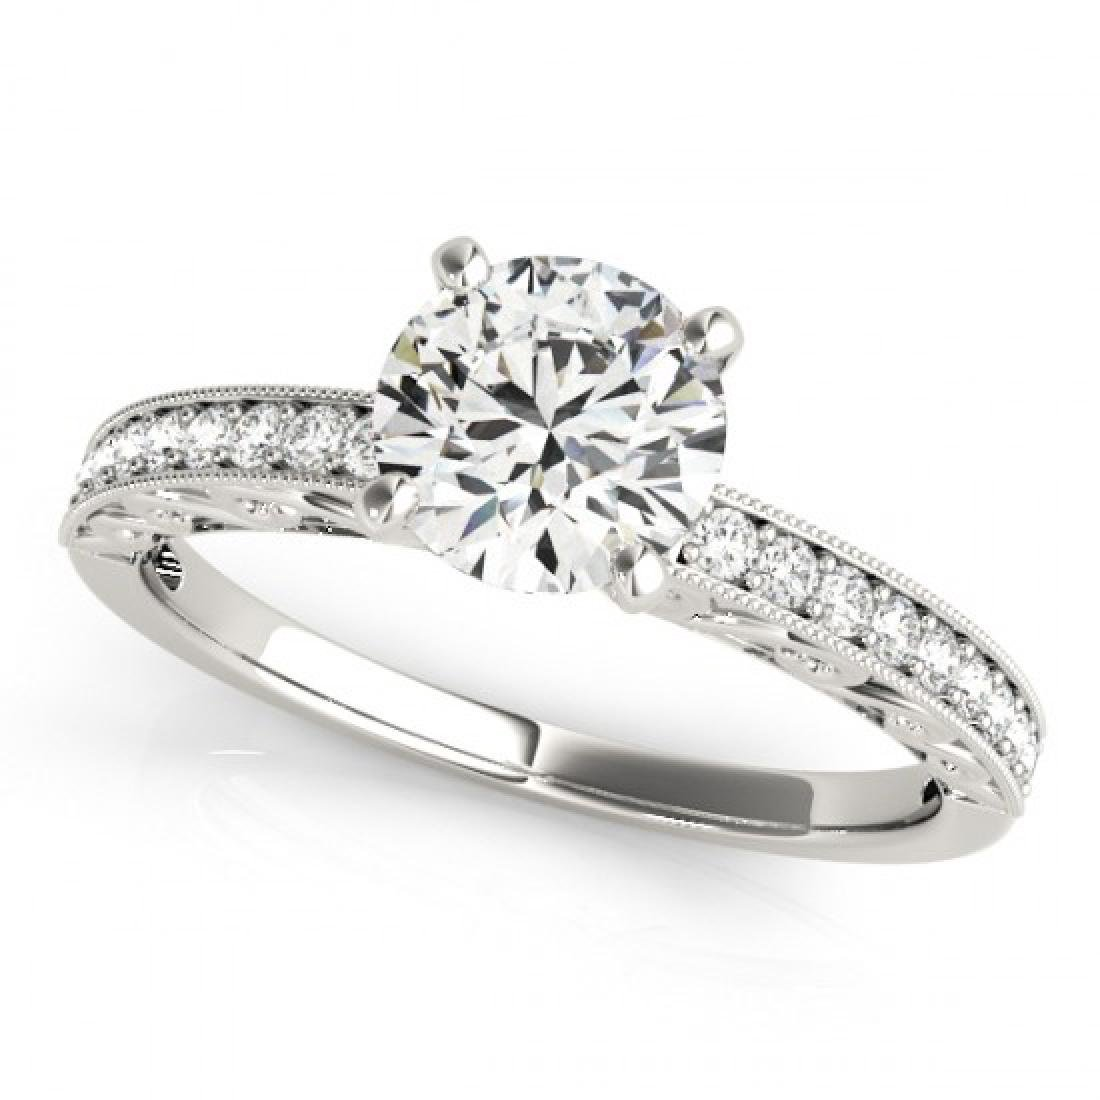 1.18 CTW Certified VS/SI Diamond Solitaire Antique Ring